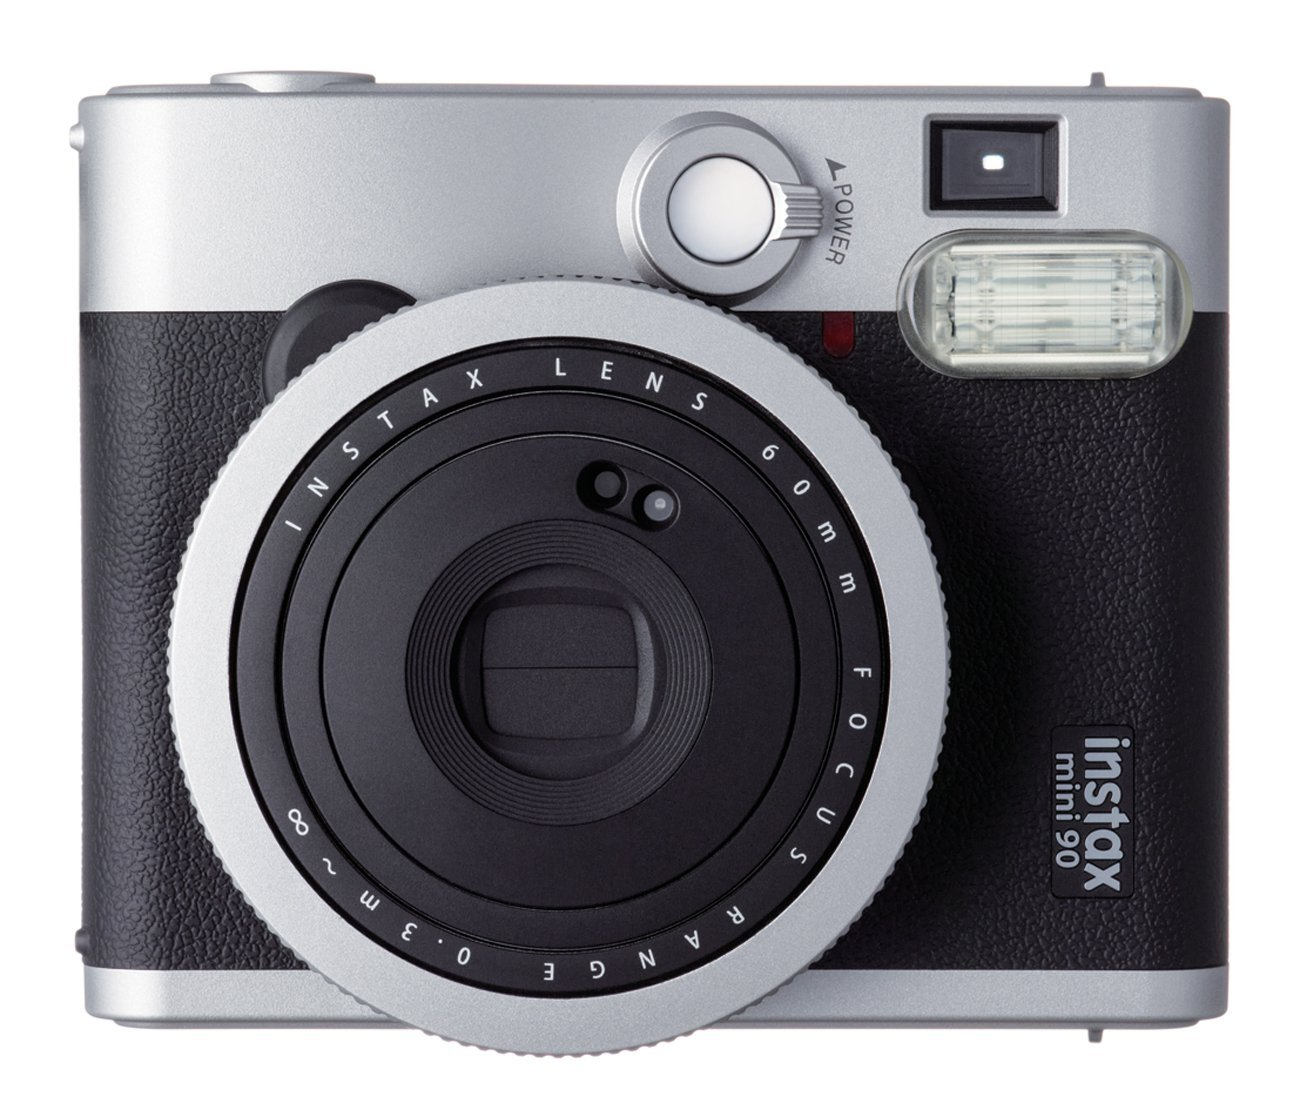 Best Instant Camera Reviews — Top 10 Models for Your Easy Choice in 2020